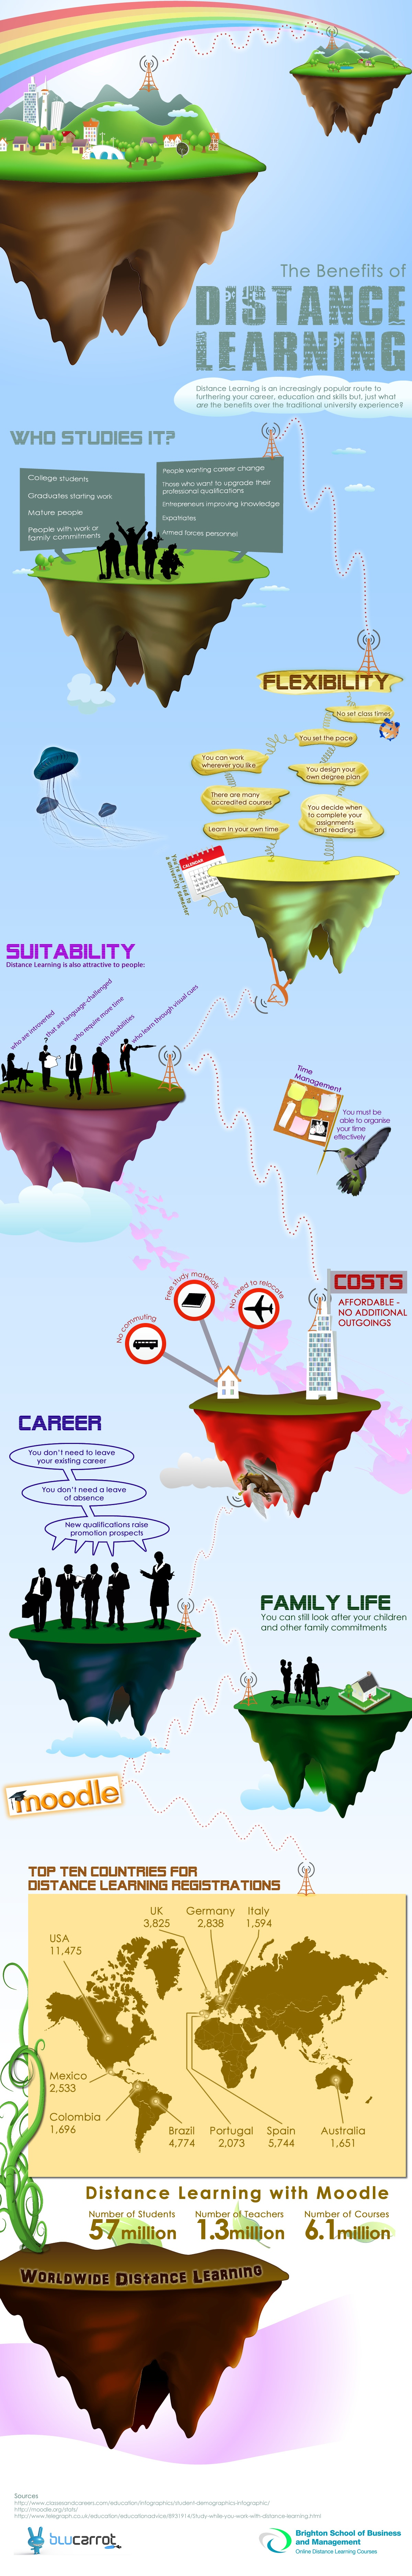 The Benefits of Distance Learning Infographic